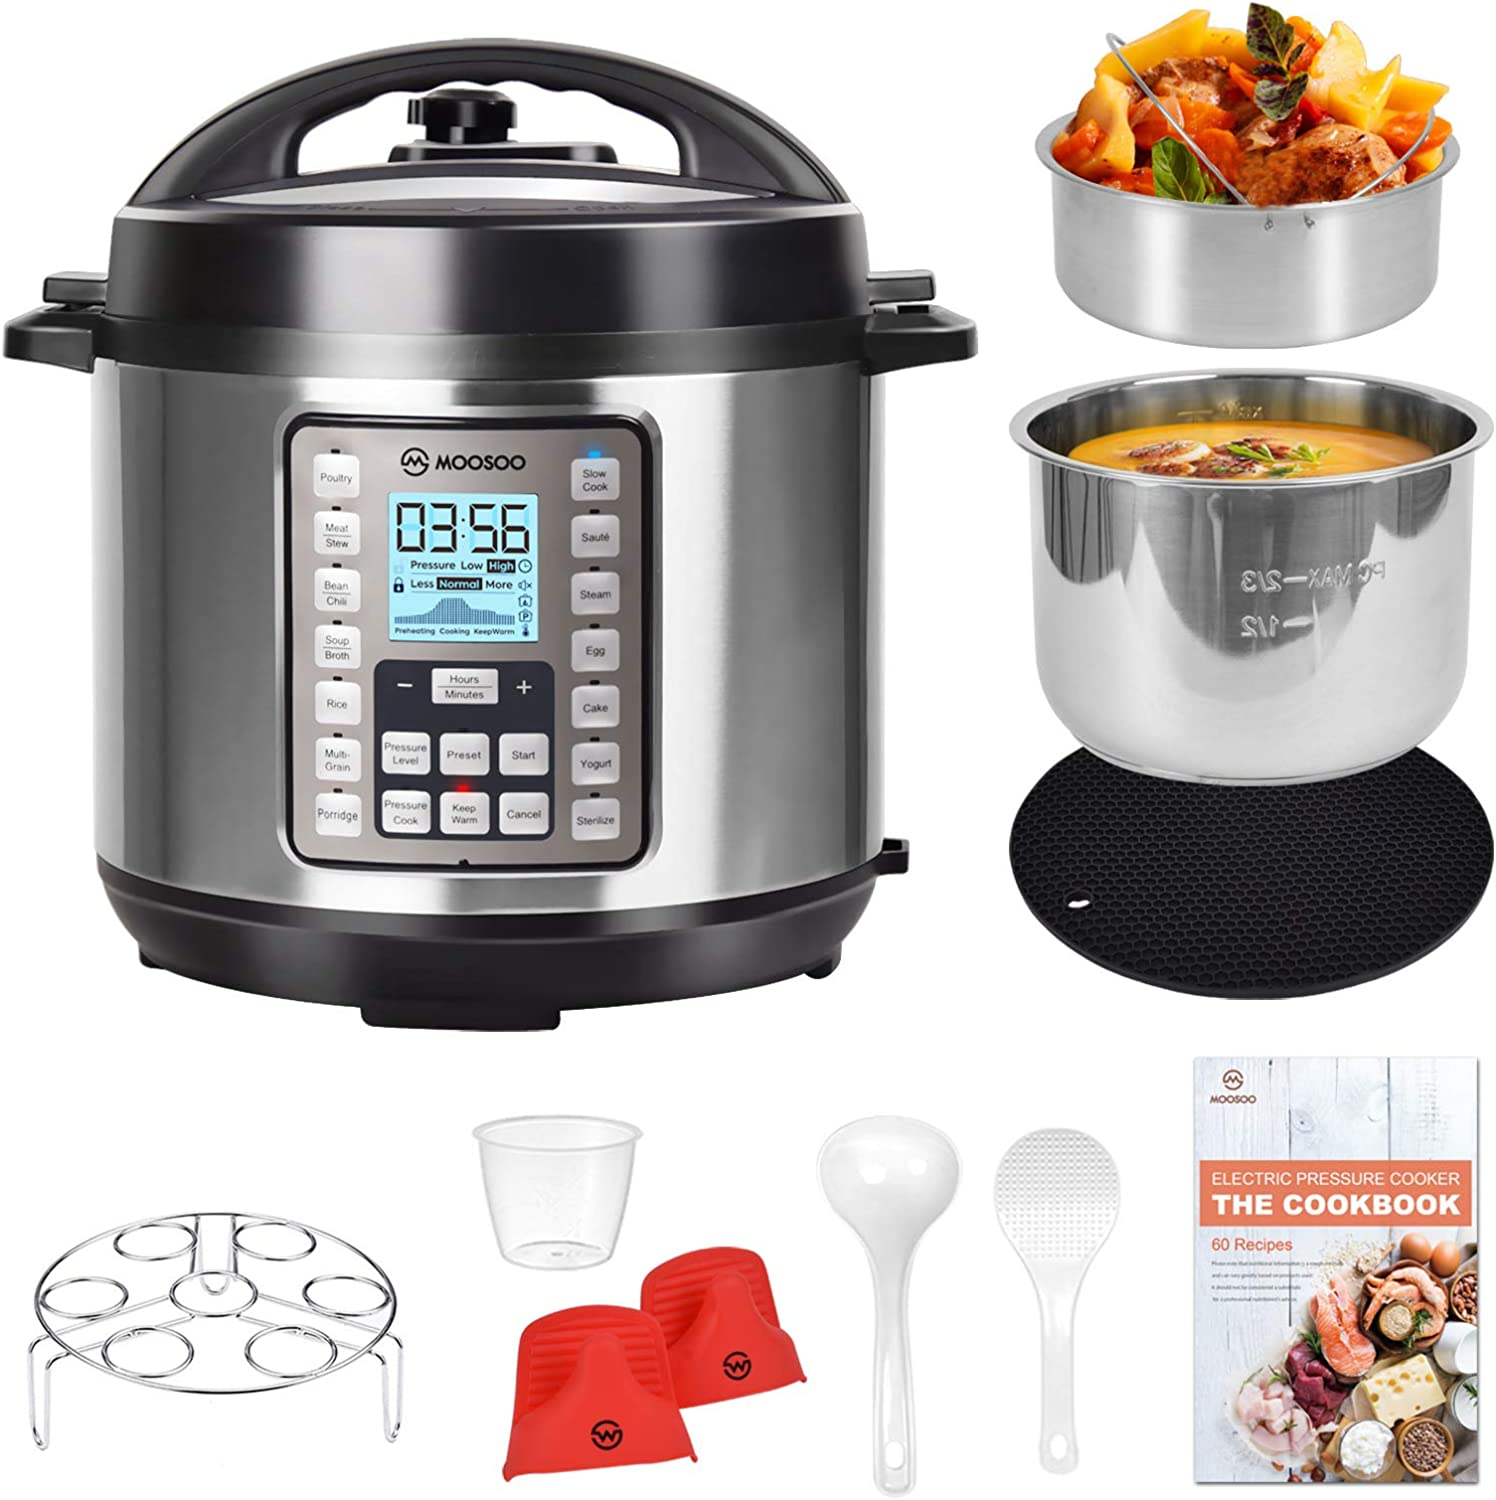 Electric vs stovetop pressure cooker